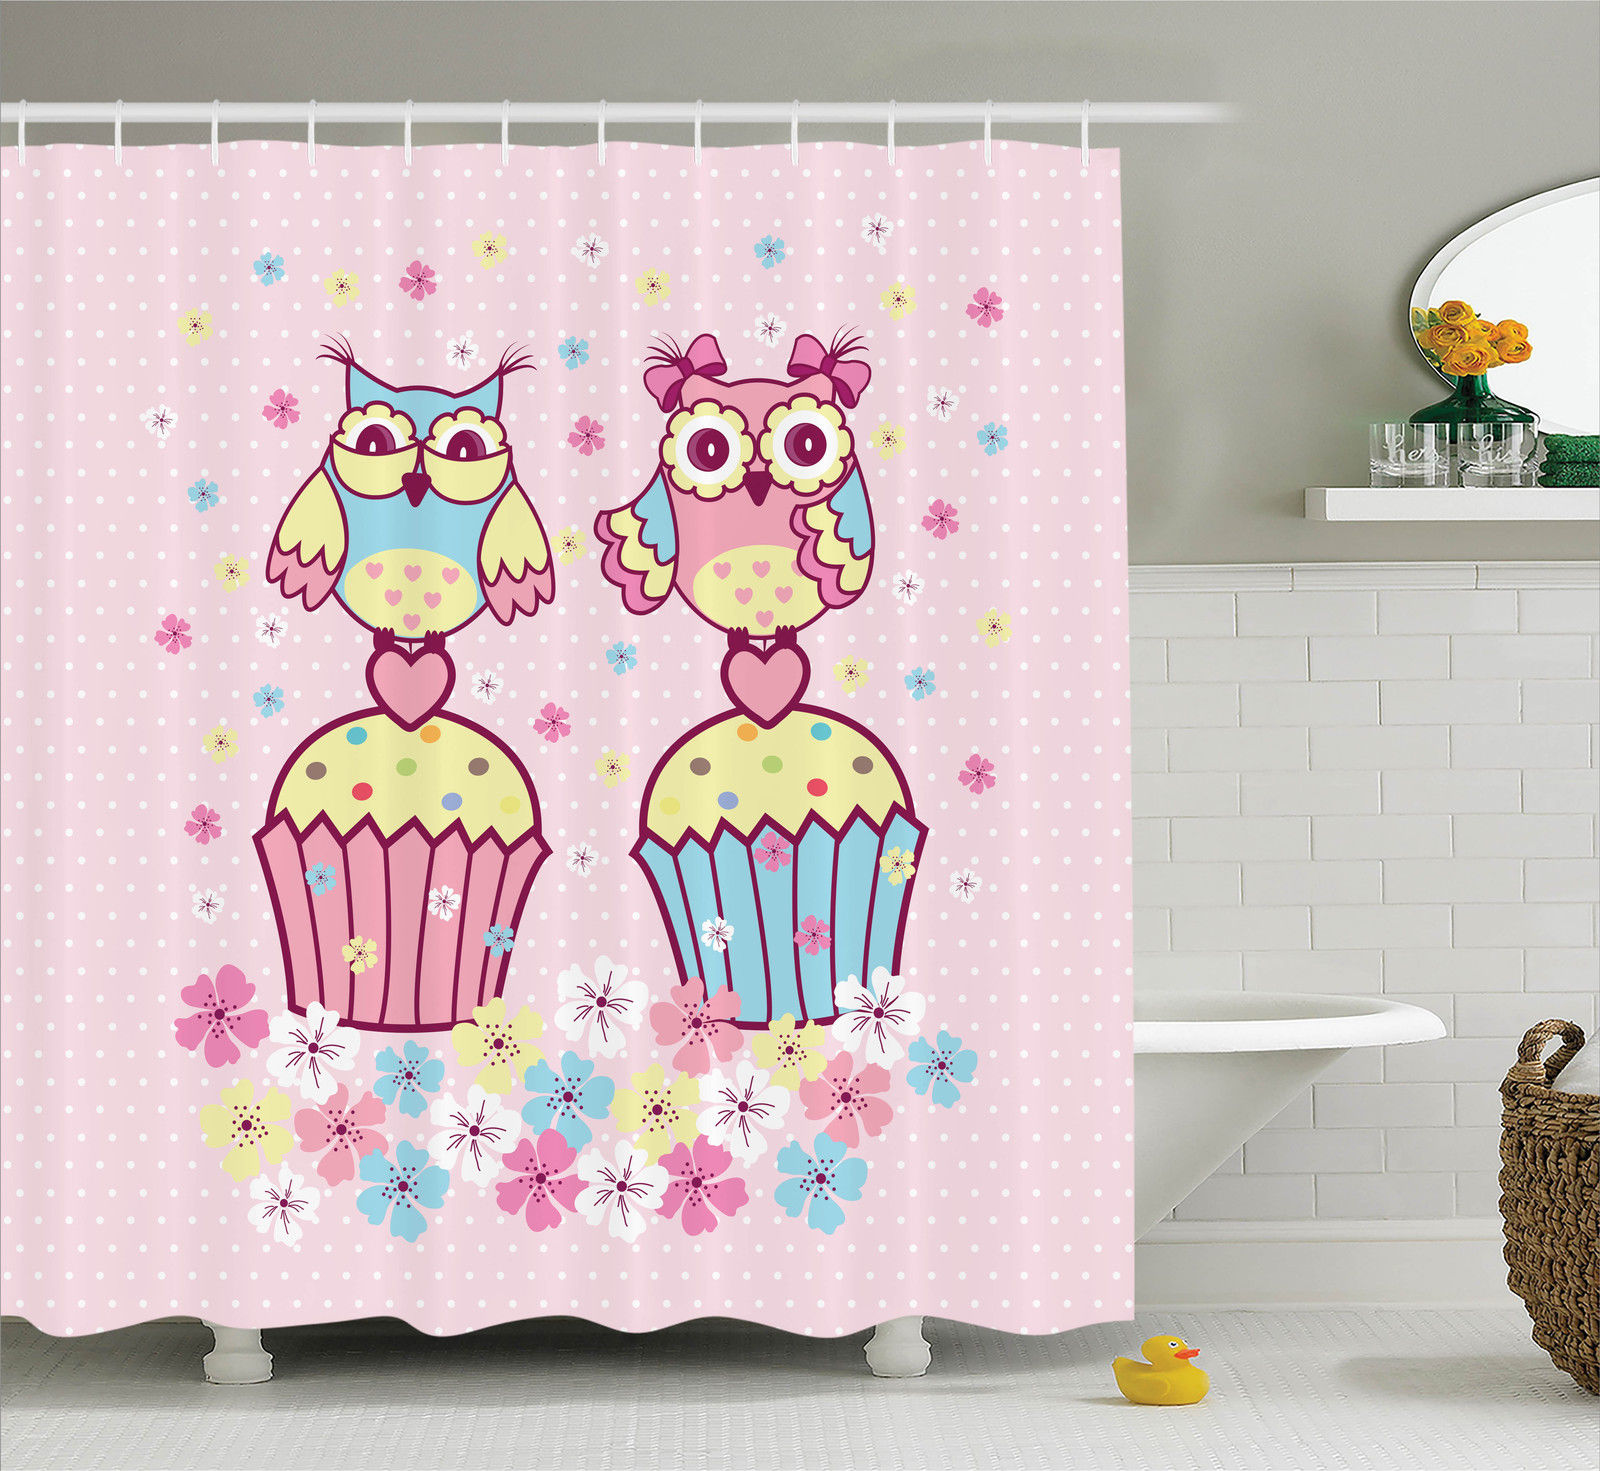 Owls Home Decor  Two Owl Couples On Cupcakes Springtime Happiness Romantic Occasions Children Art, Bathroom Accessories, 69W X 84L Inches Extra Long, By Ambesonne